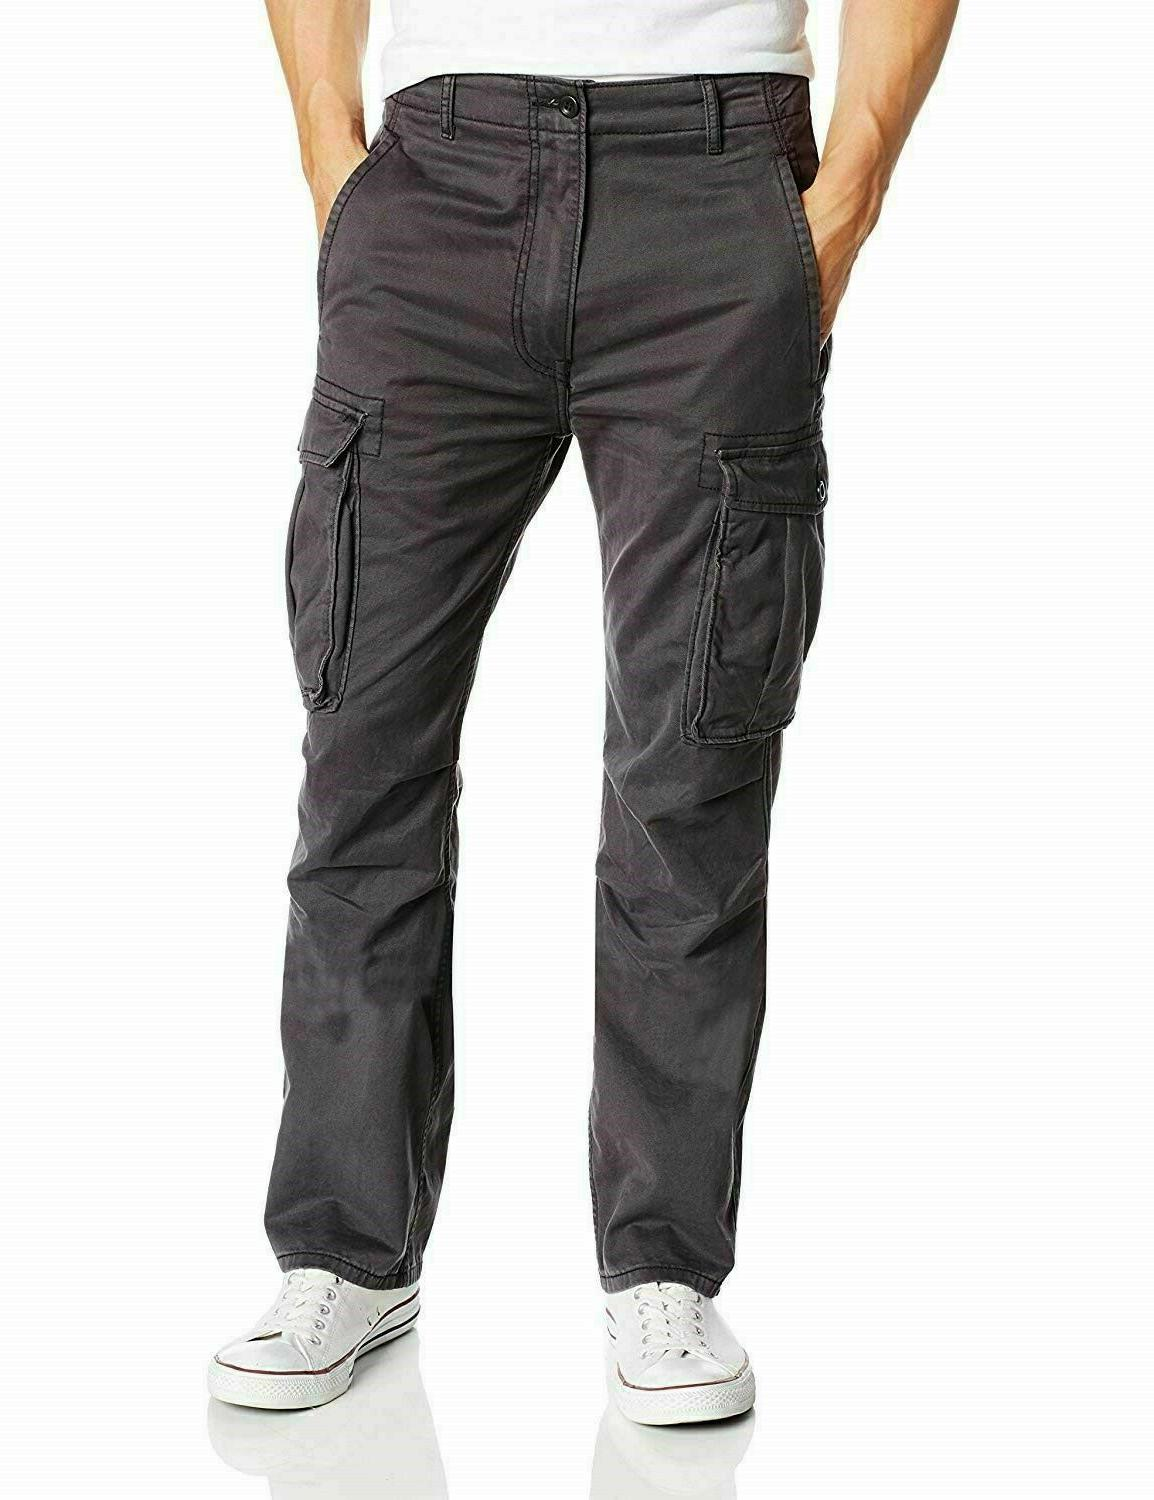 levis relaxed fit ace cargo pants charcoal